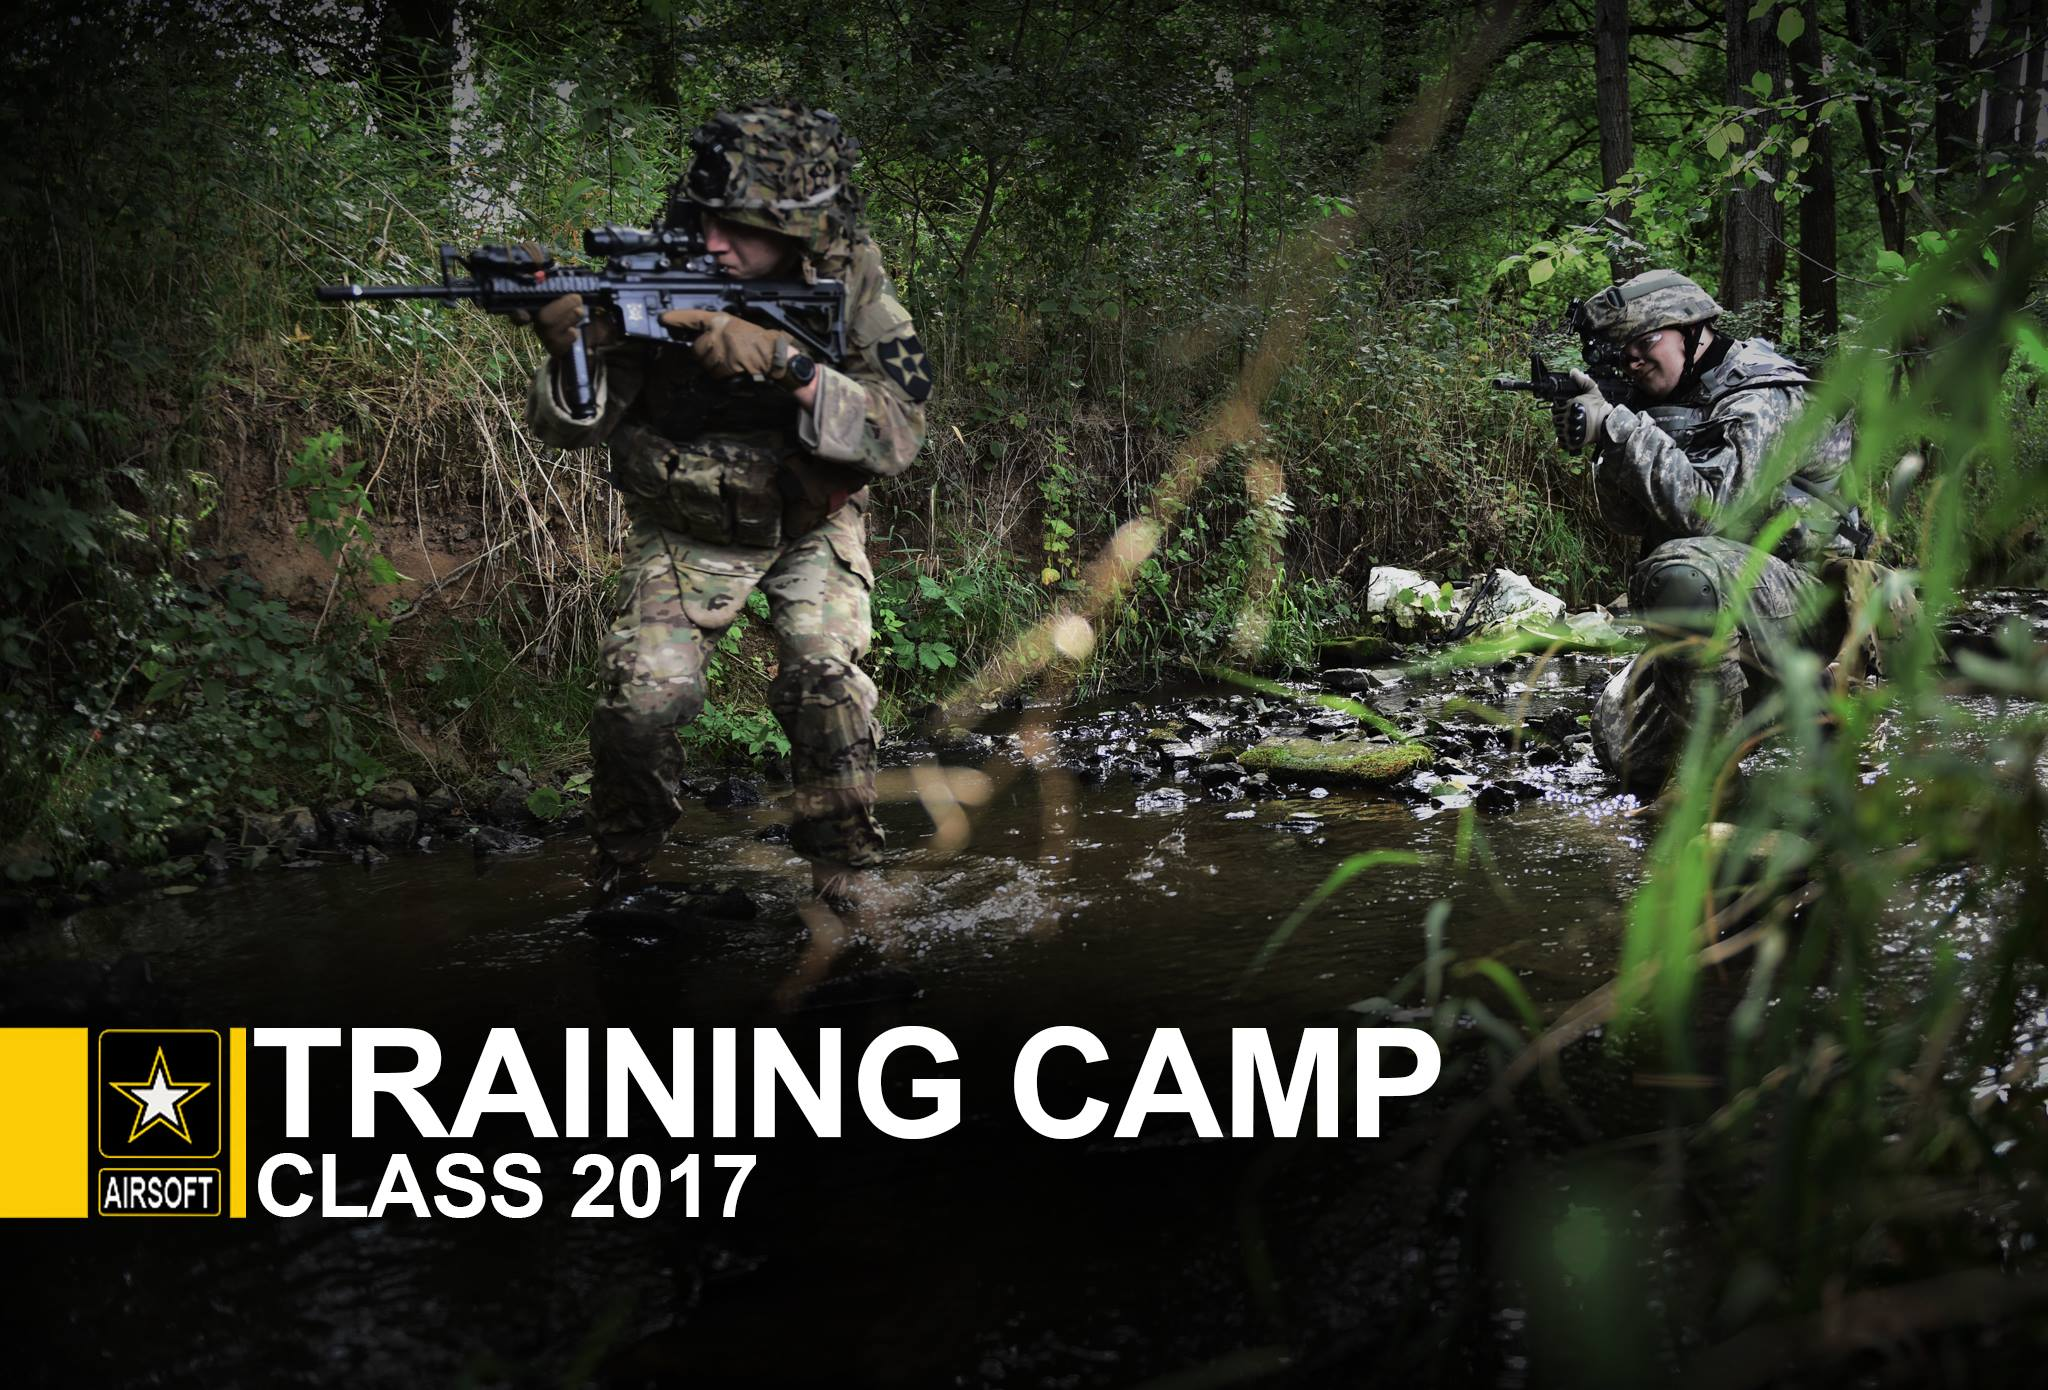 Training Camp - Class 2017